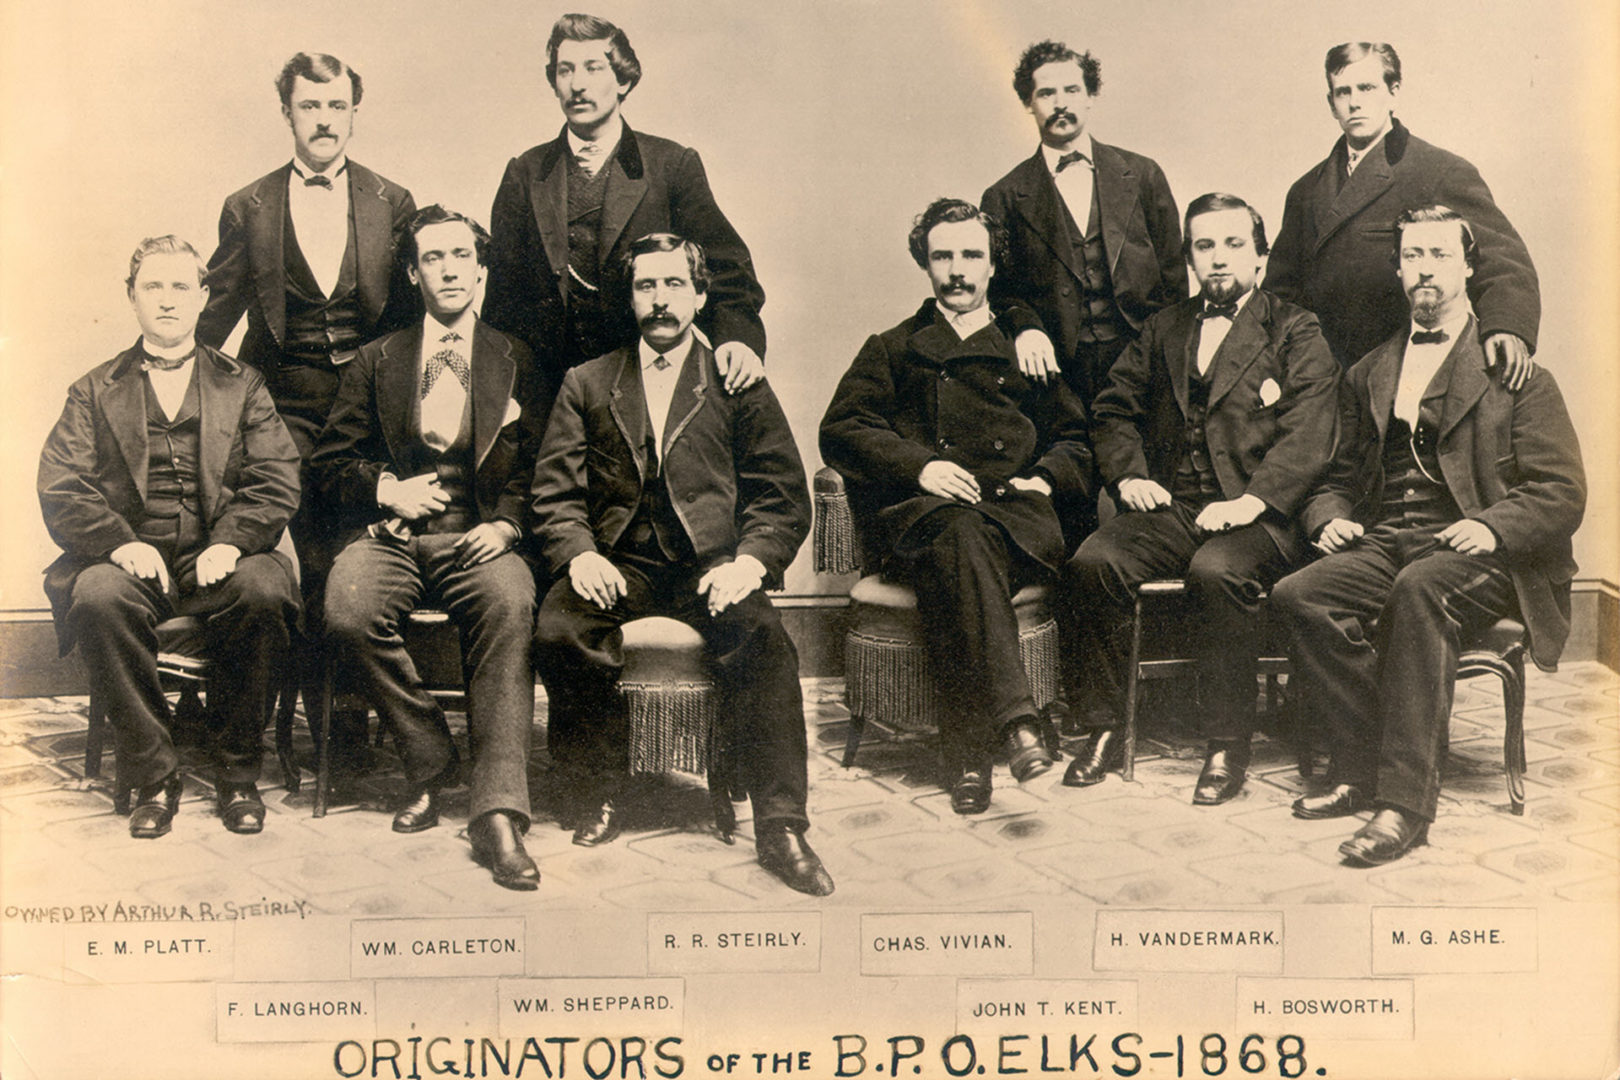 Originators of the B.P.O.Elks 1868